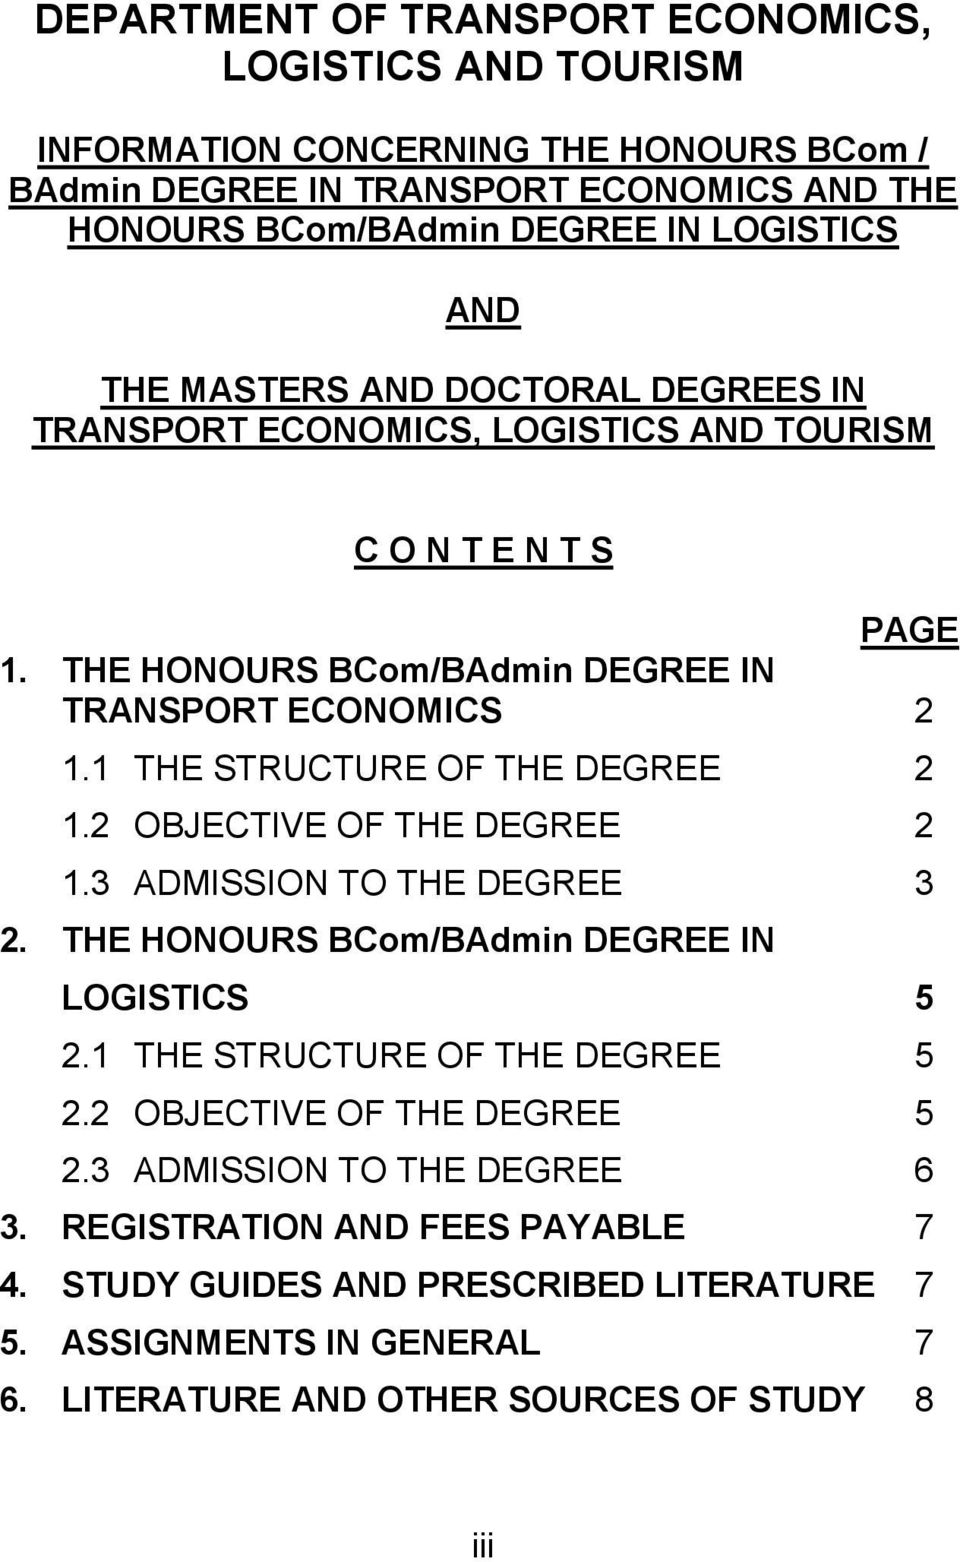 1 THE STRUCTURE OF THE DEGREE 2 1.2 OBJECTIVE OF THE DEGREE 2 1.3 ADMISSION TO THE DEGREE 3 2. THE HONOURS BCom/BAdmin DEGREE IN LOGISTICS 5 2.1 THE STRUCTURE OF THE DEGREE 5 2.